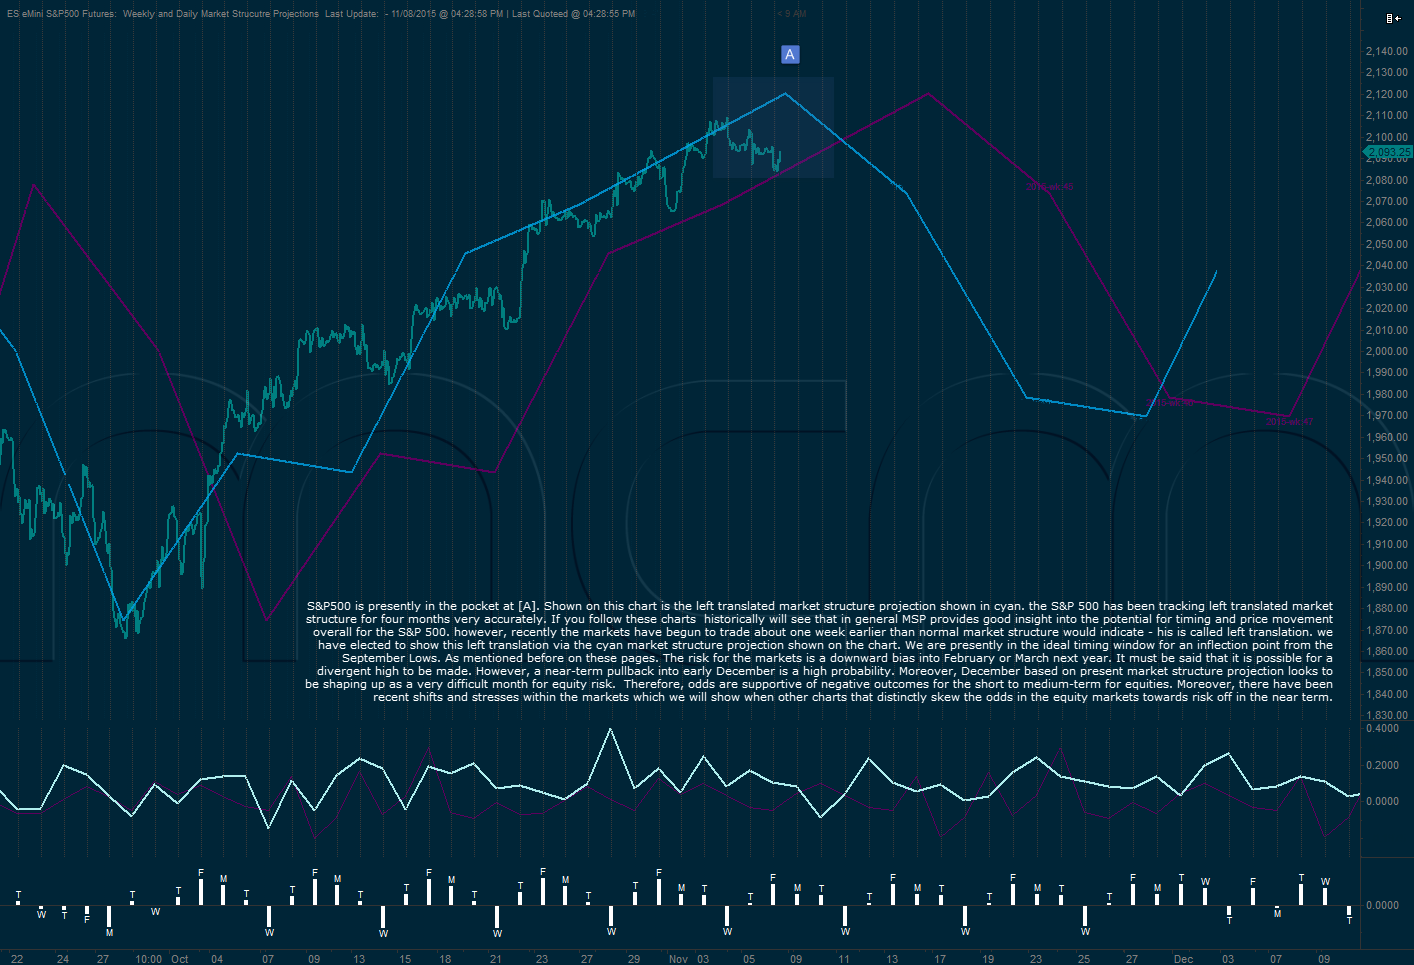 S&P 500 market structure projection